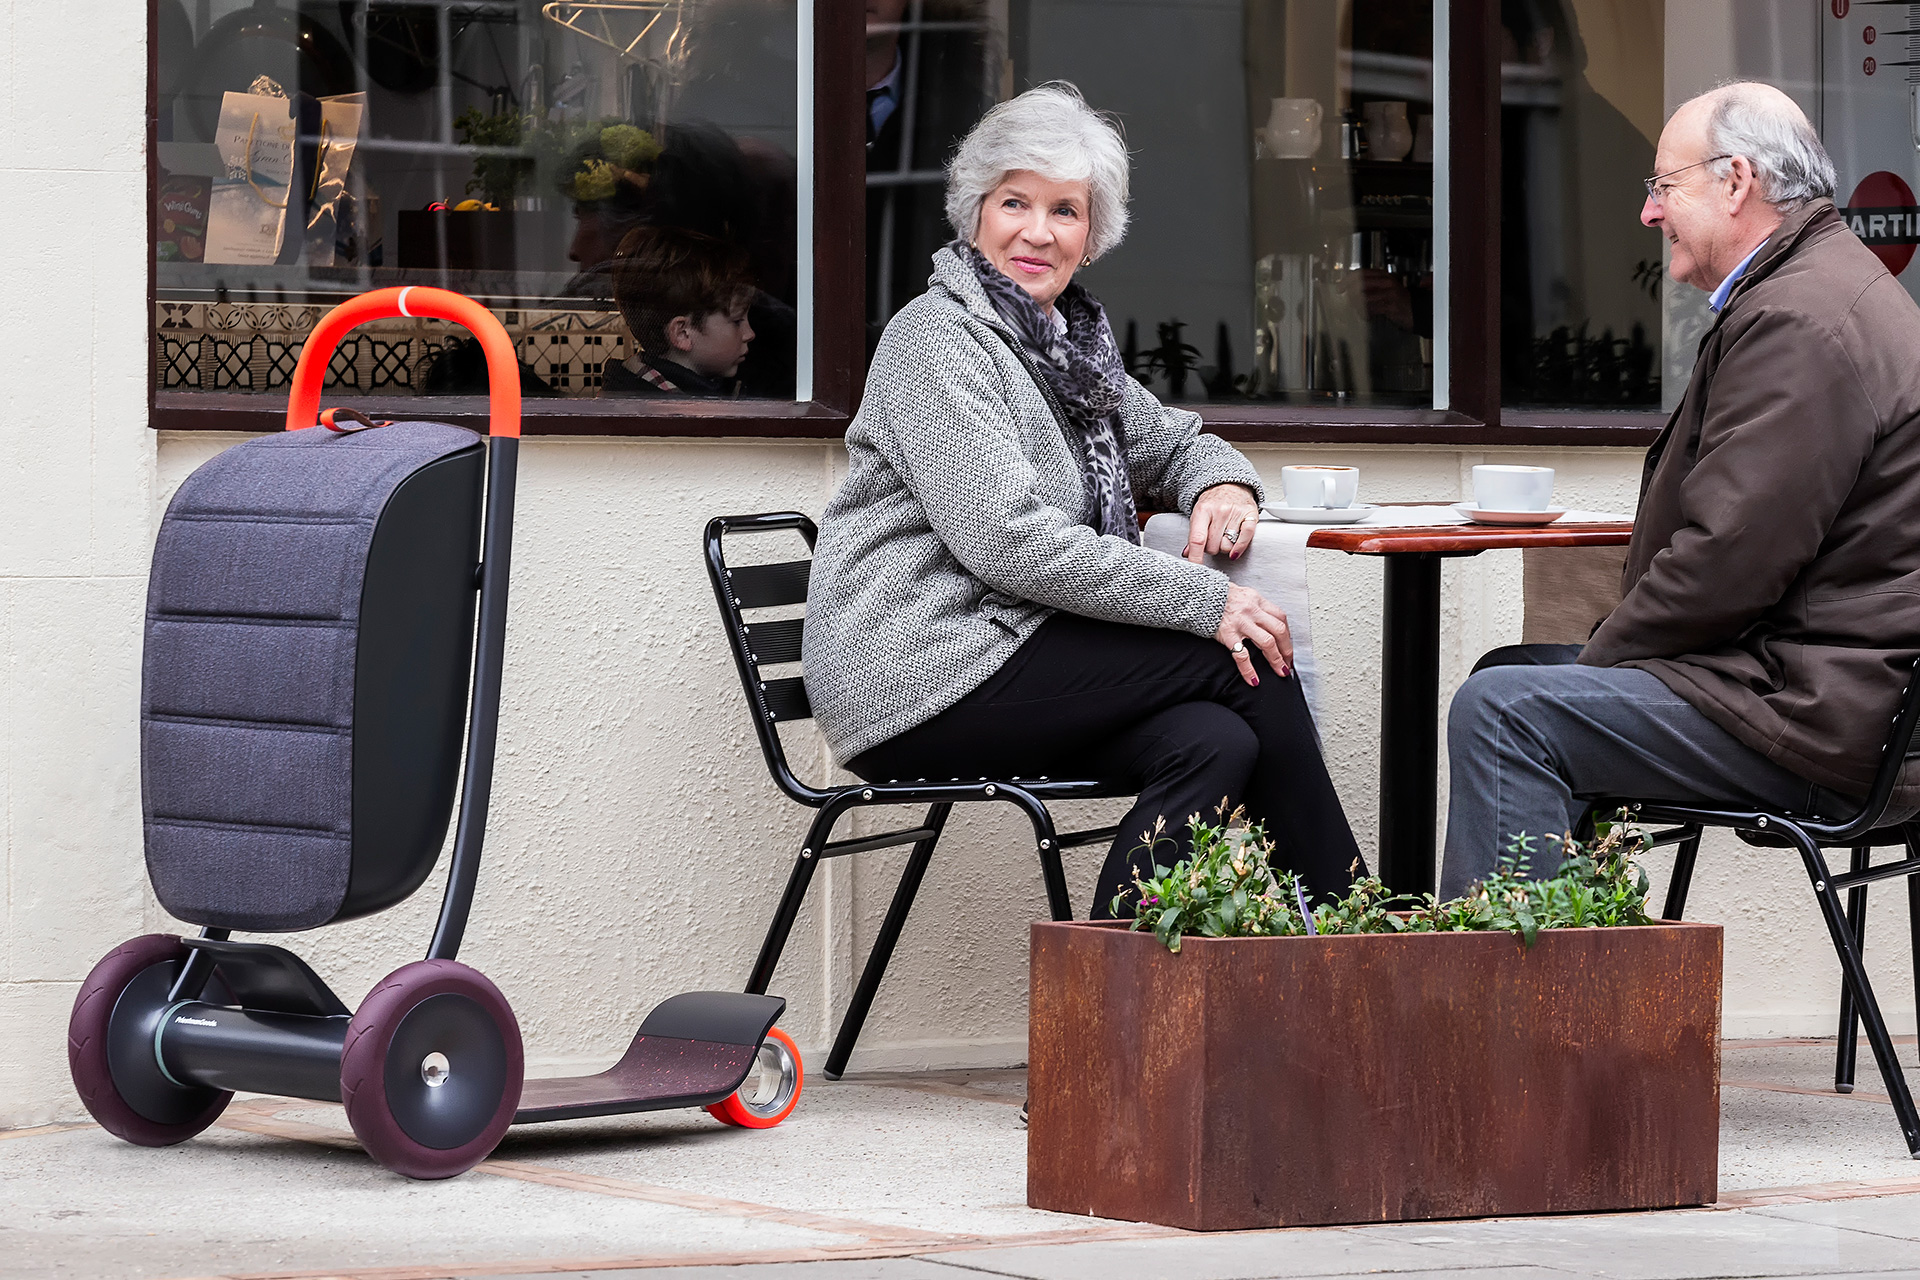 The Scooter aims to provide independence through mobility in old age